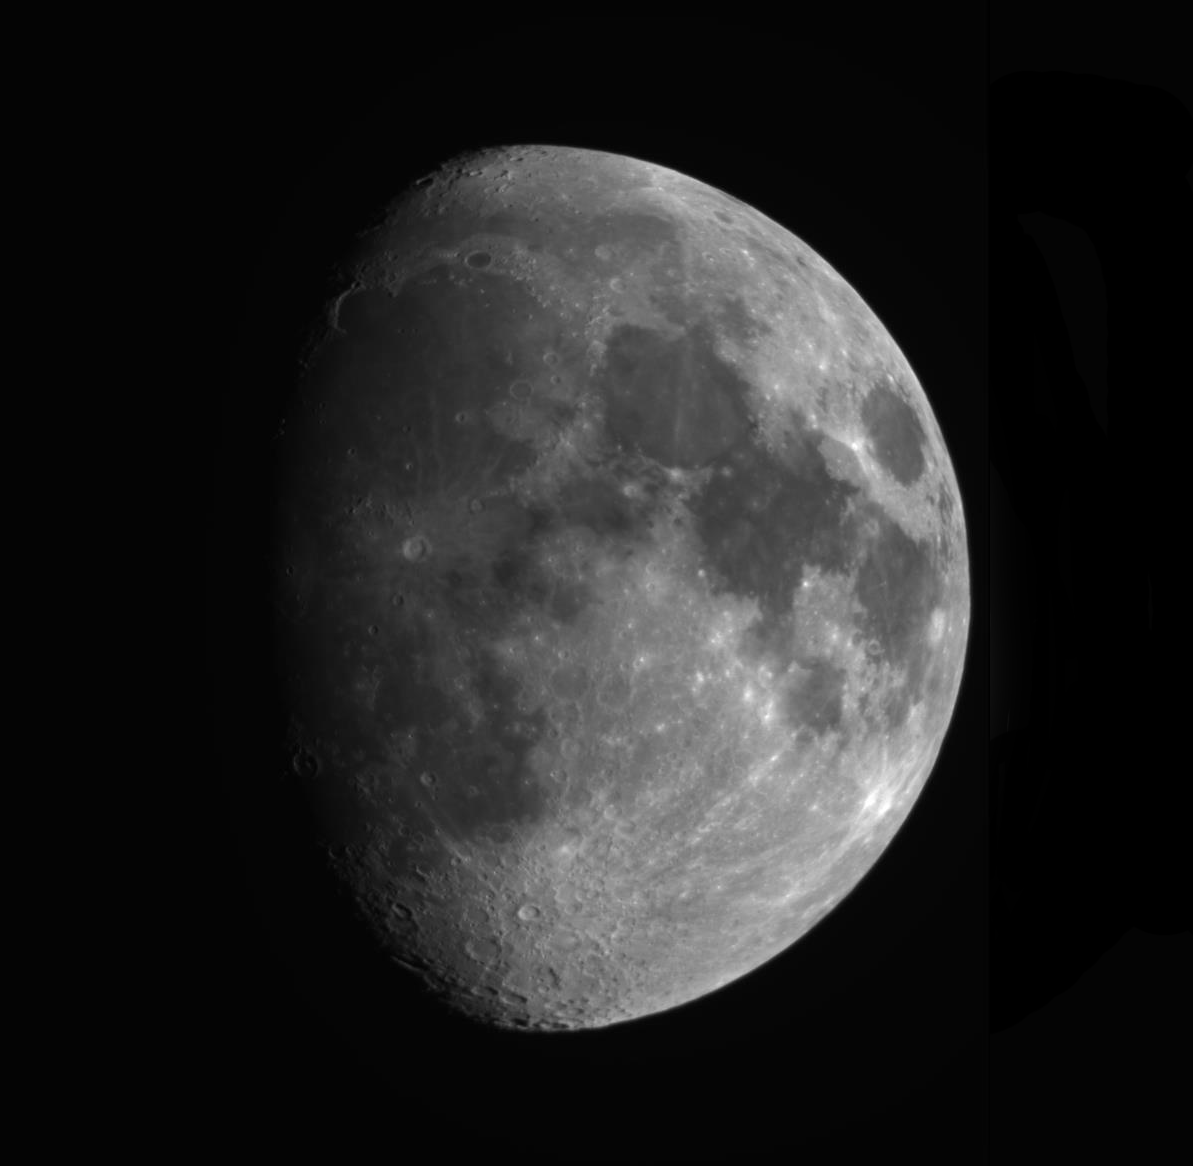 Moon_150219.png.9732311900b0b233286600aede88a918.png